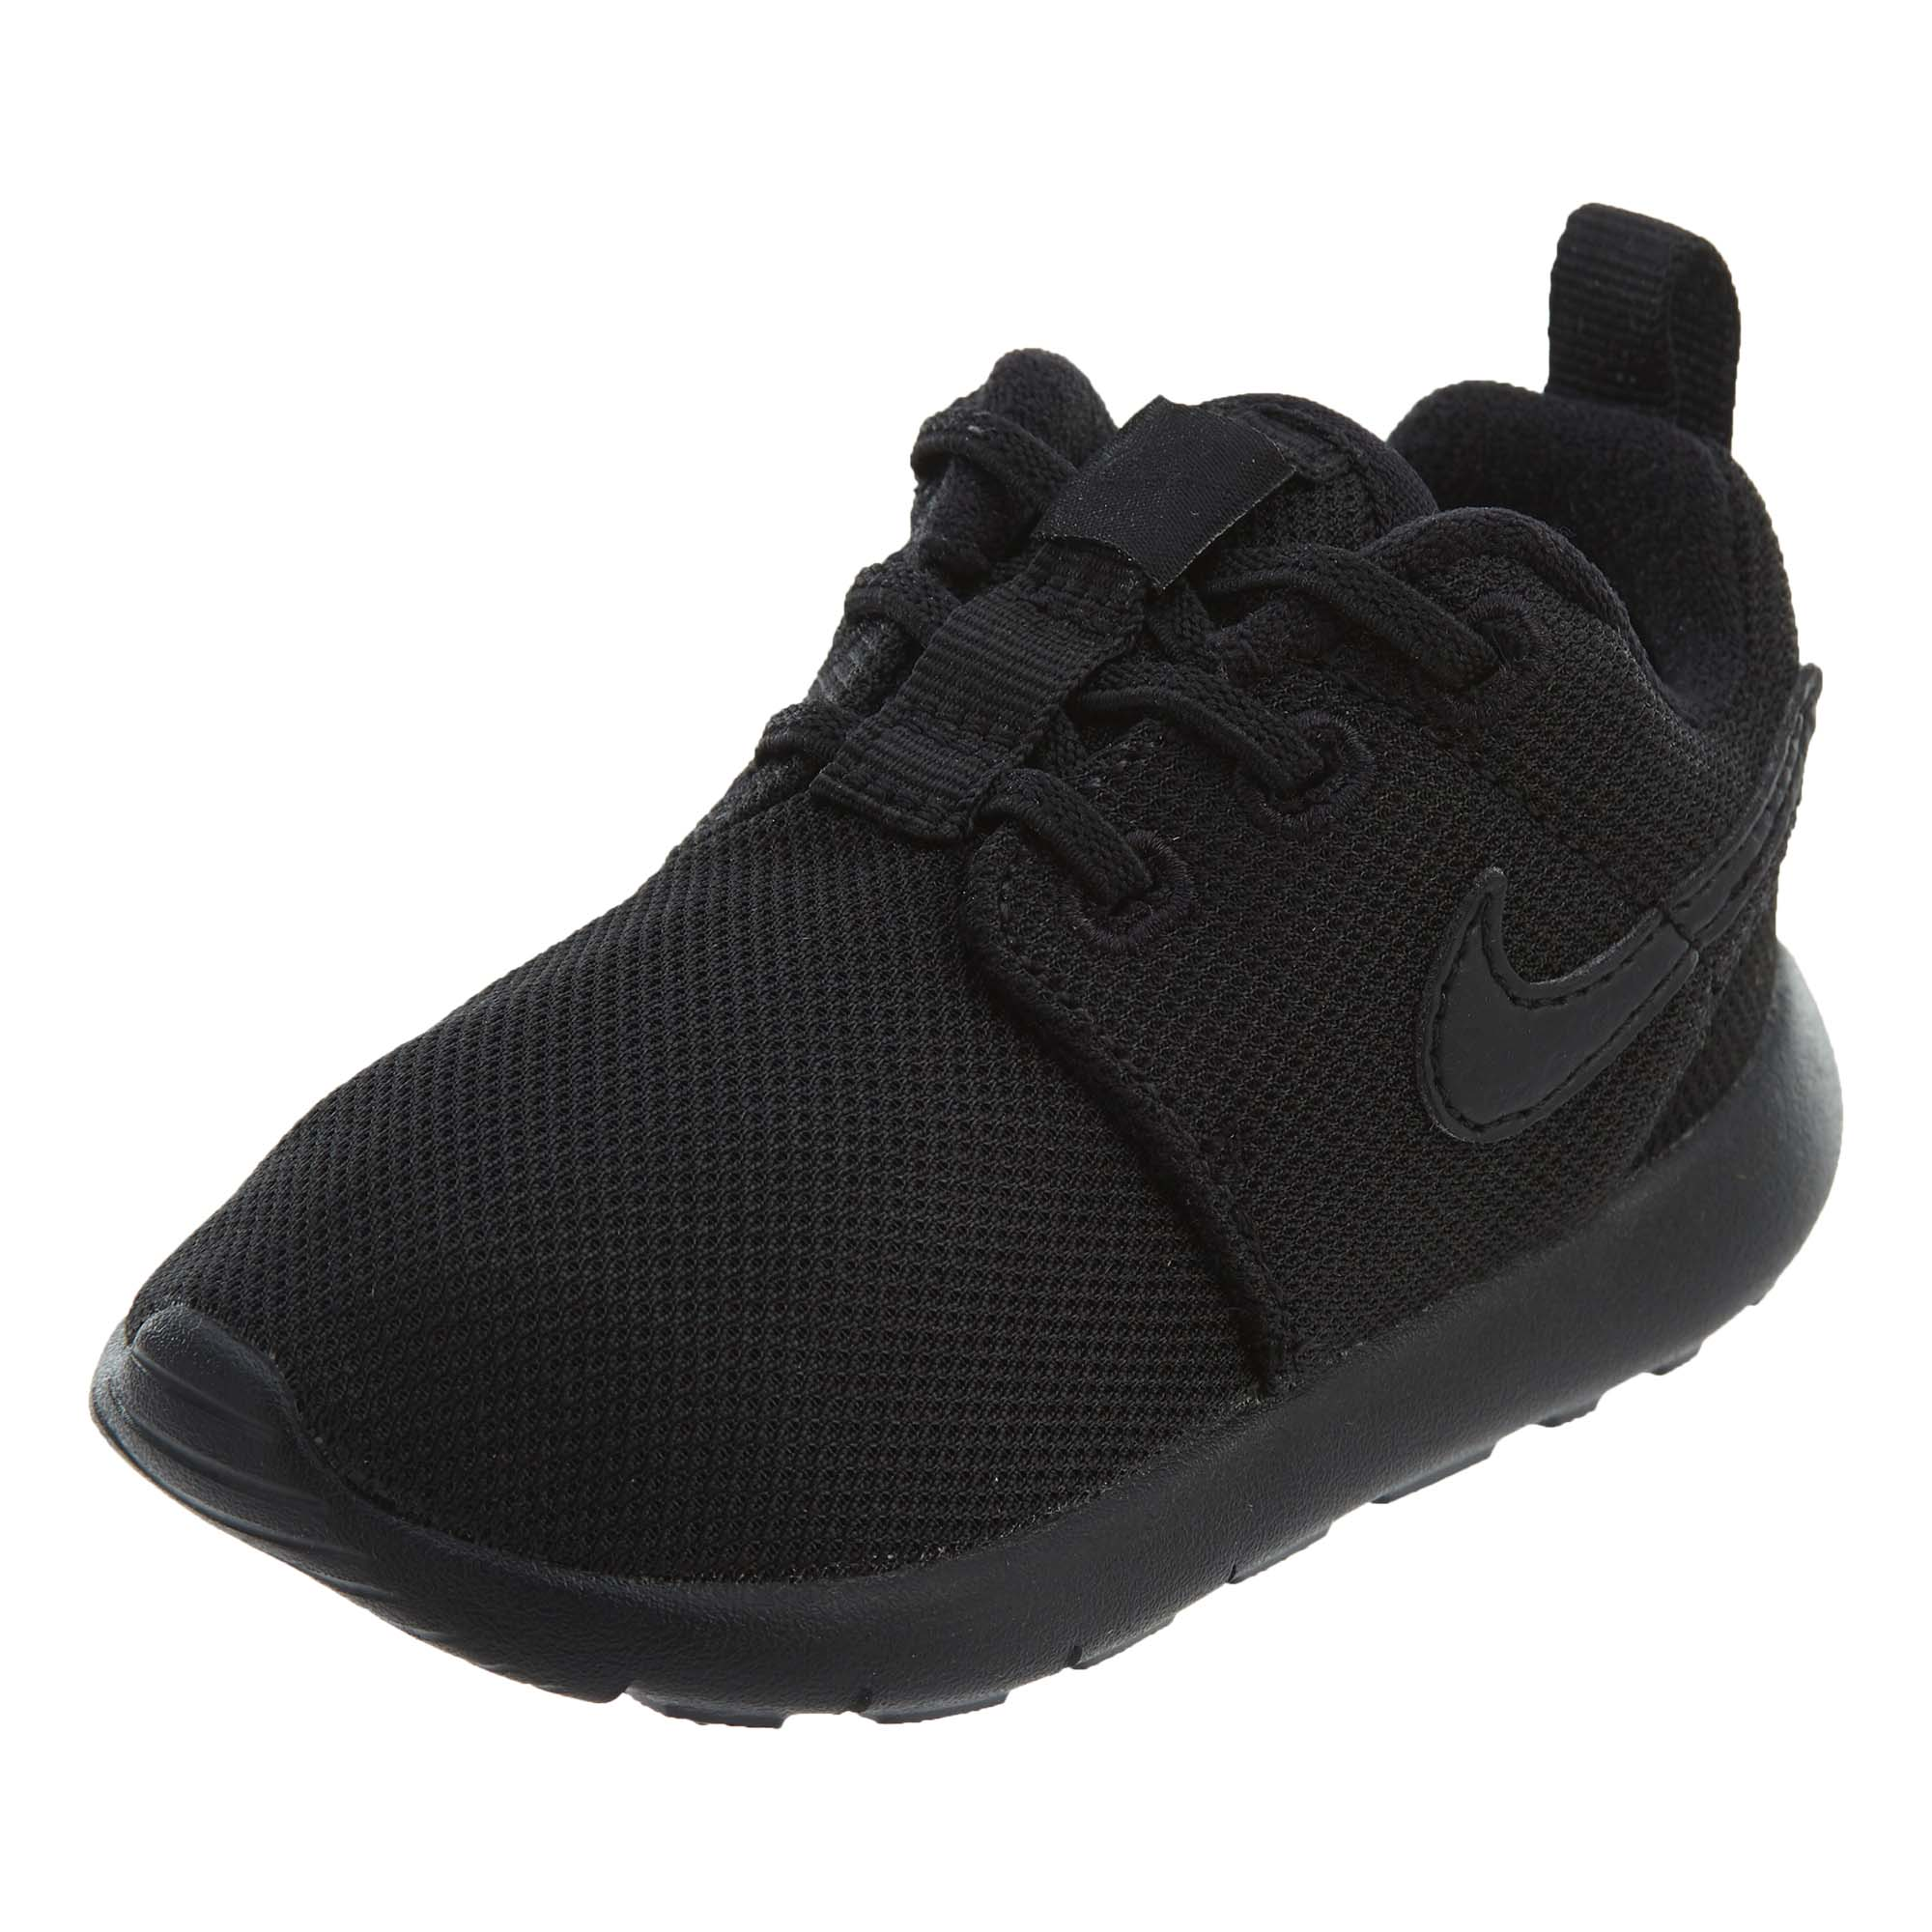 0e879b5b99b Details about Nike Toddlers Roshe One Running Shoes 749430-031